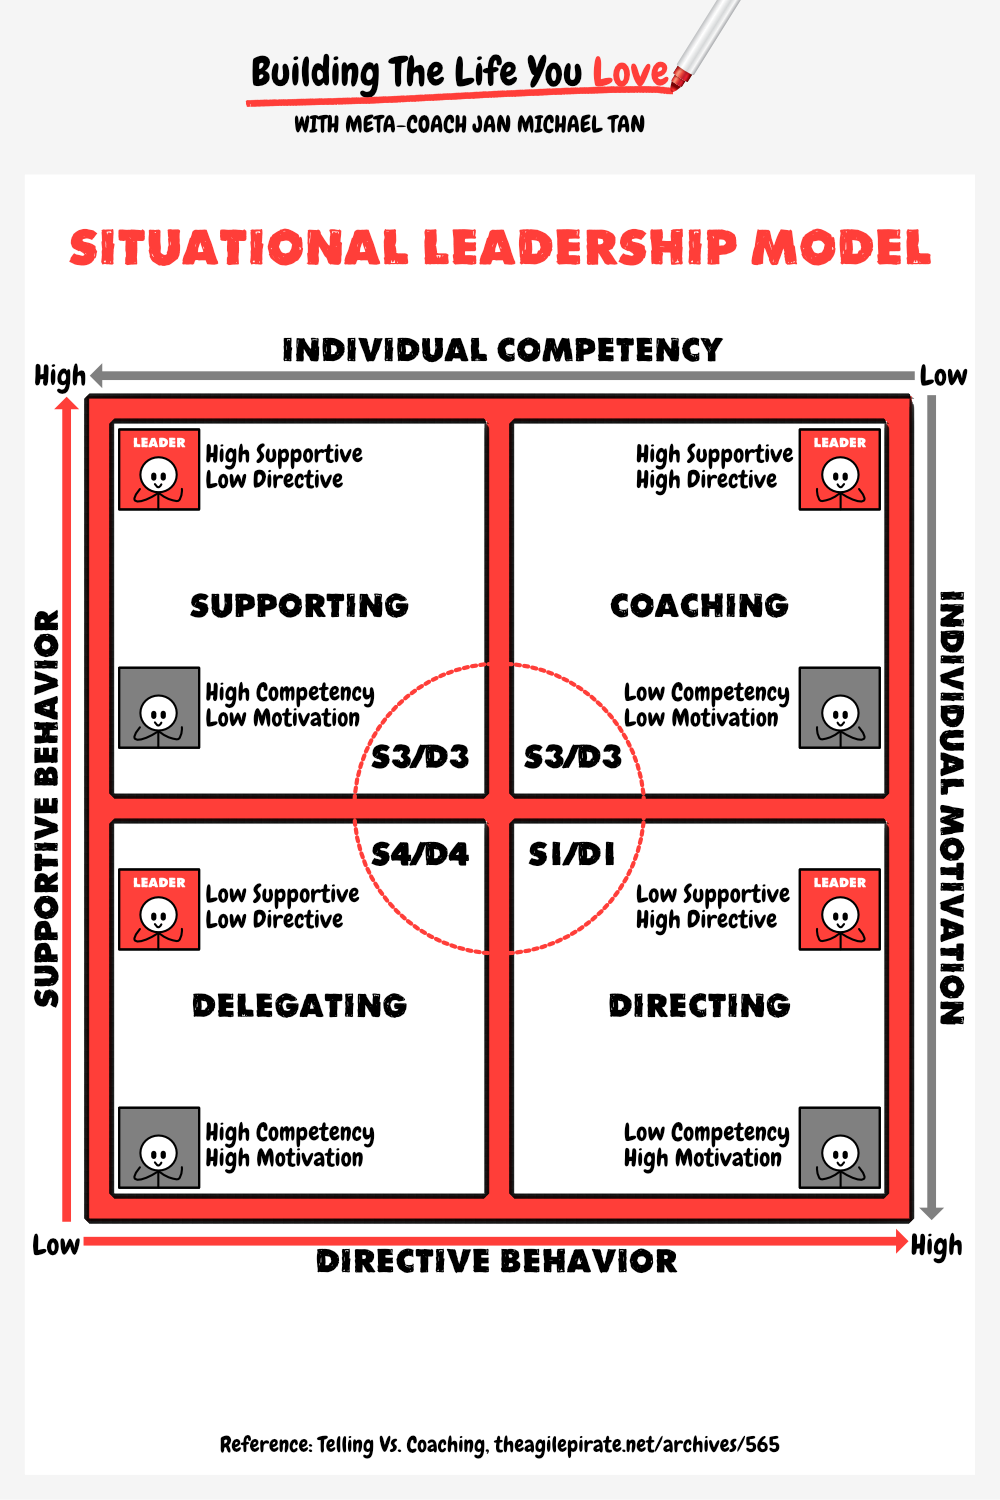 How can you use the Situational leadership Model in your